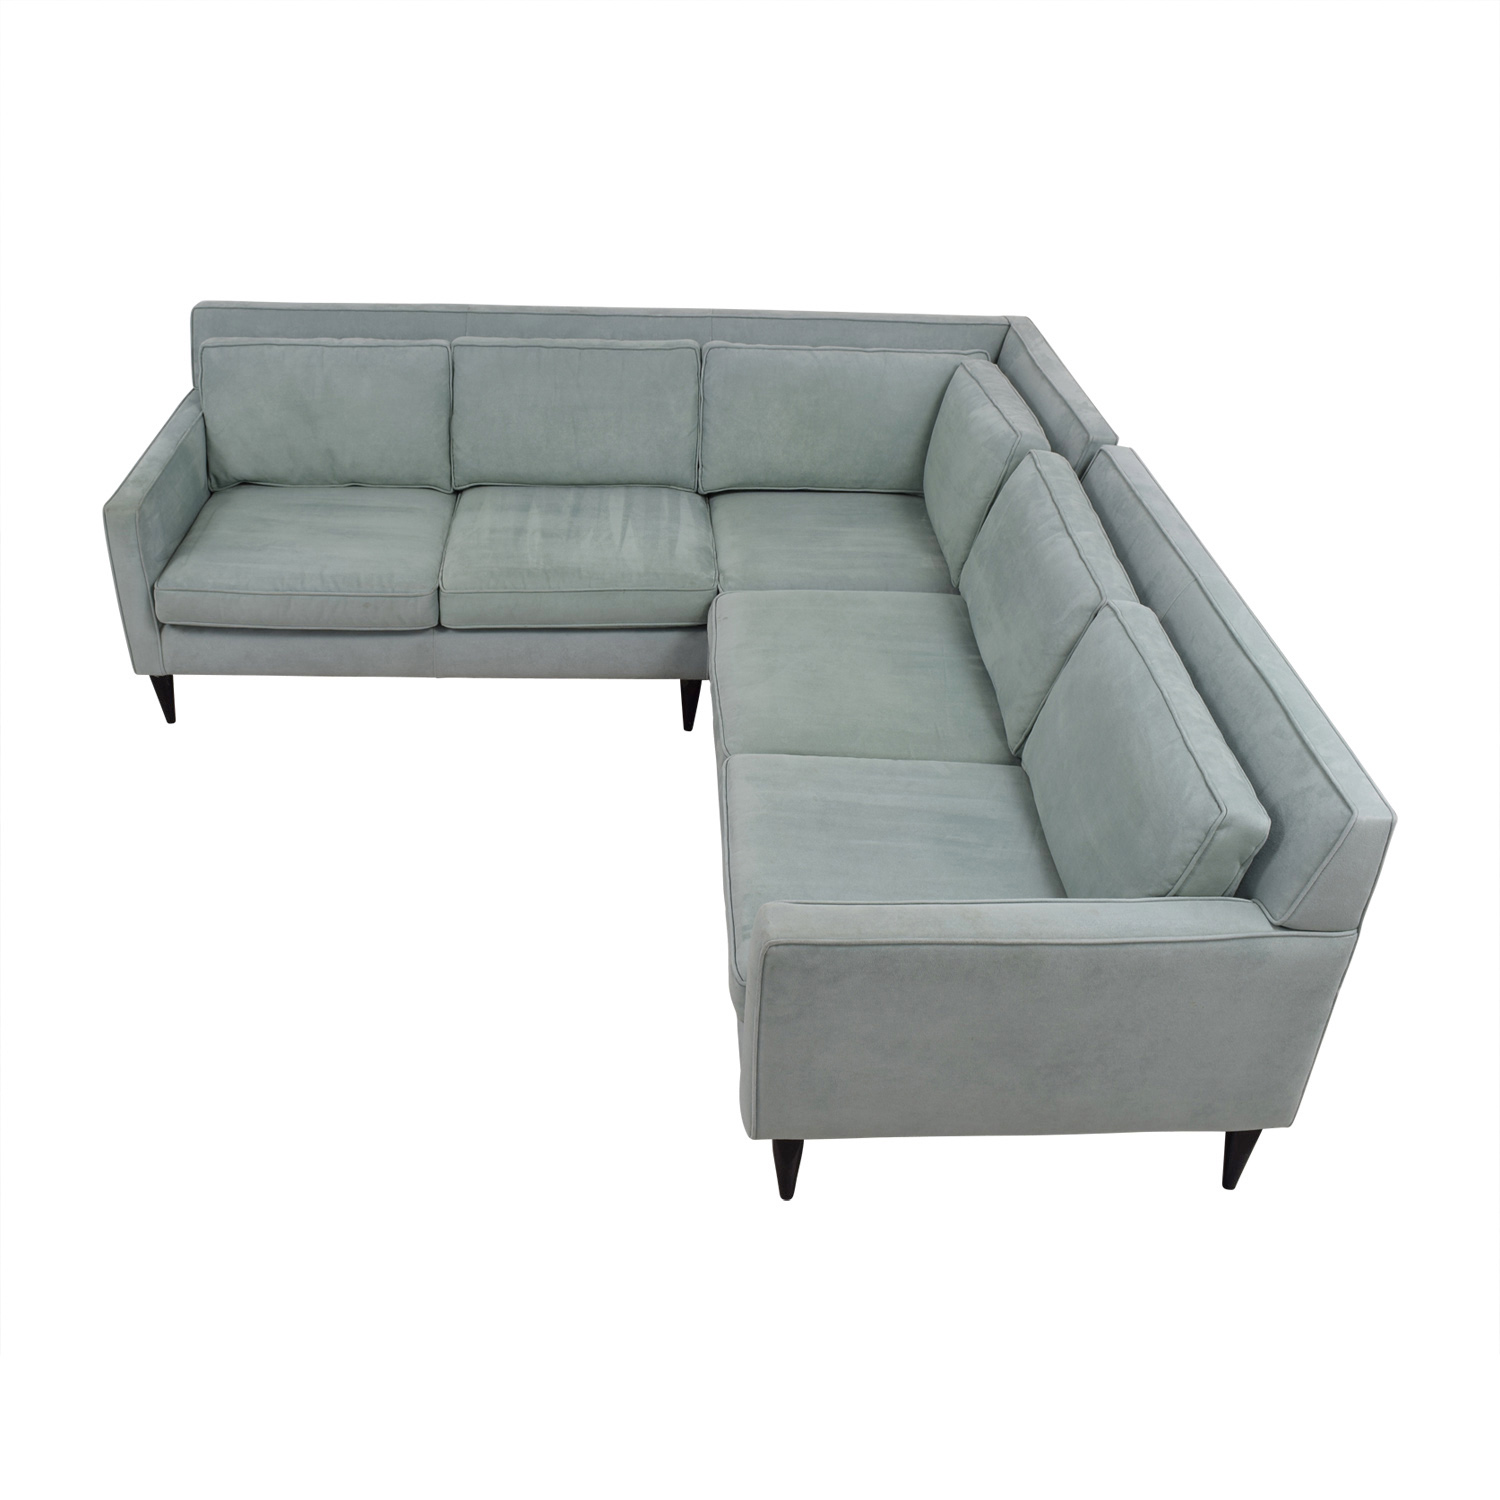 Buy crate barrel crate barrel rochelle teal sectional online